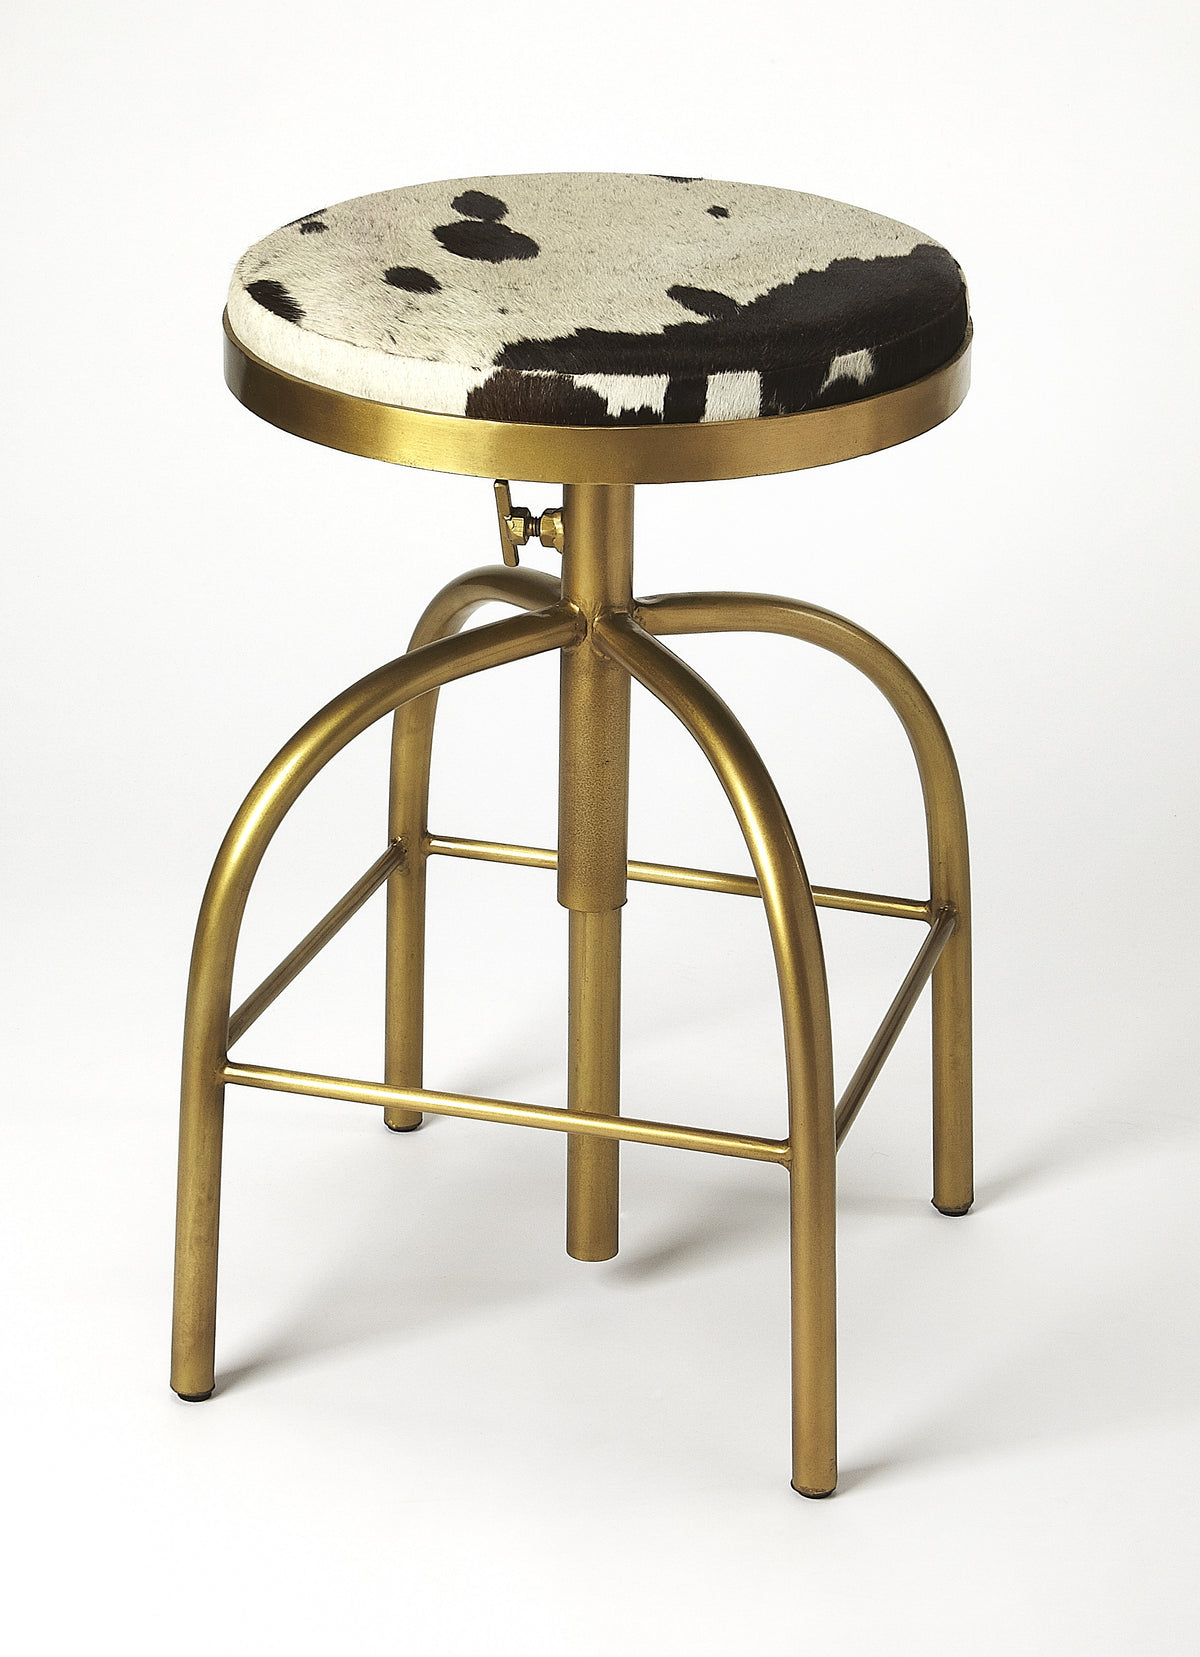 GROGAN - HAIR-ON-HIDE - BARSTOOL